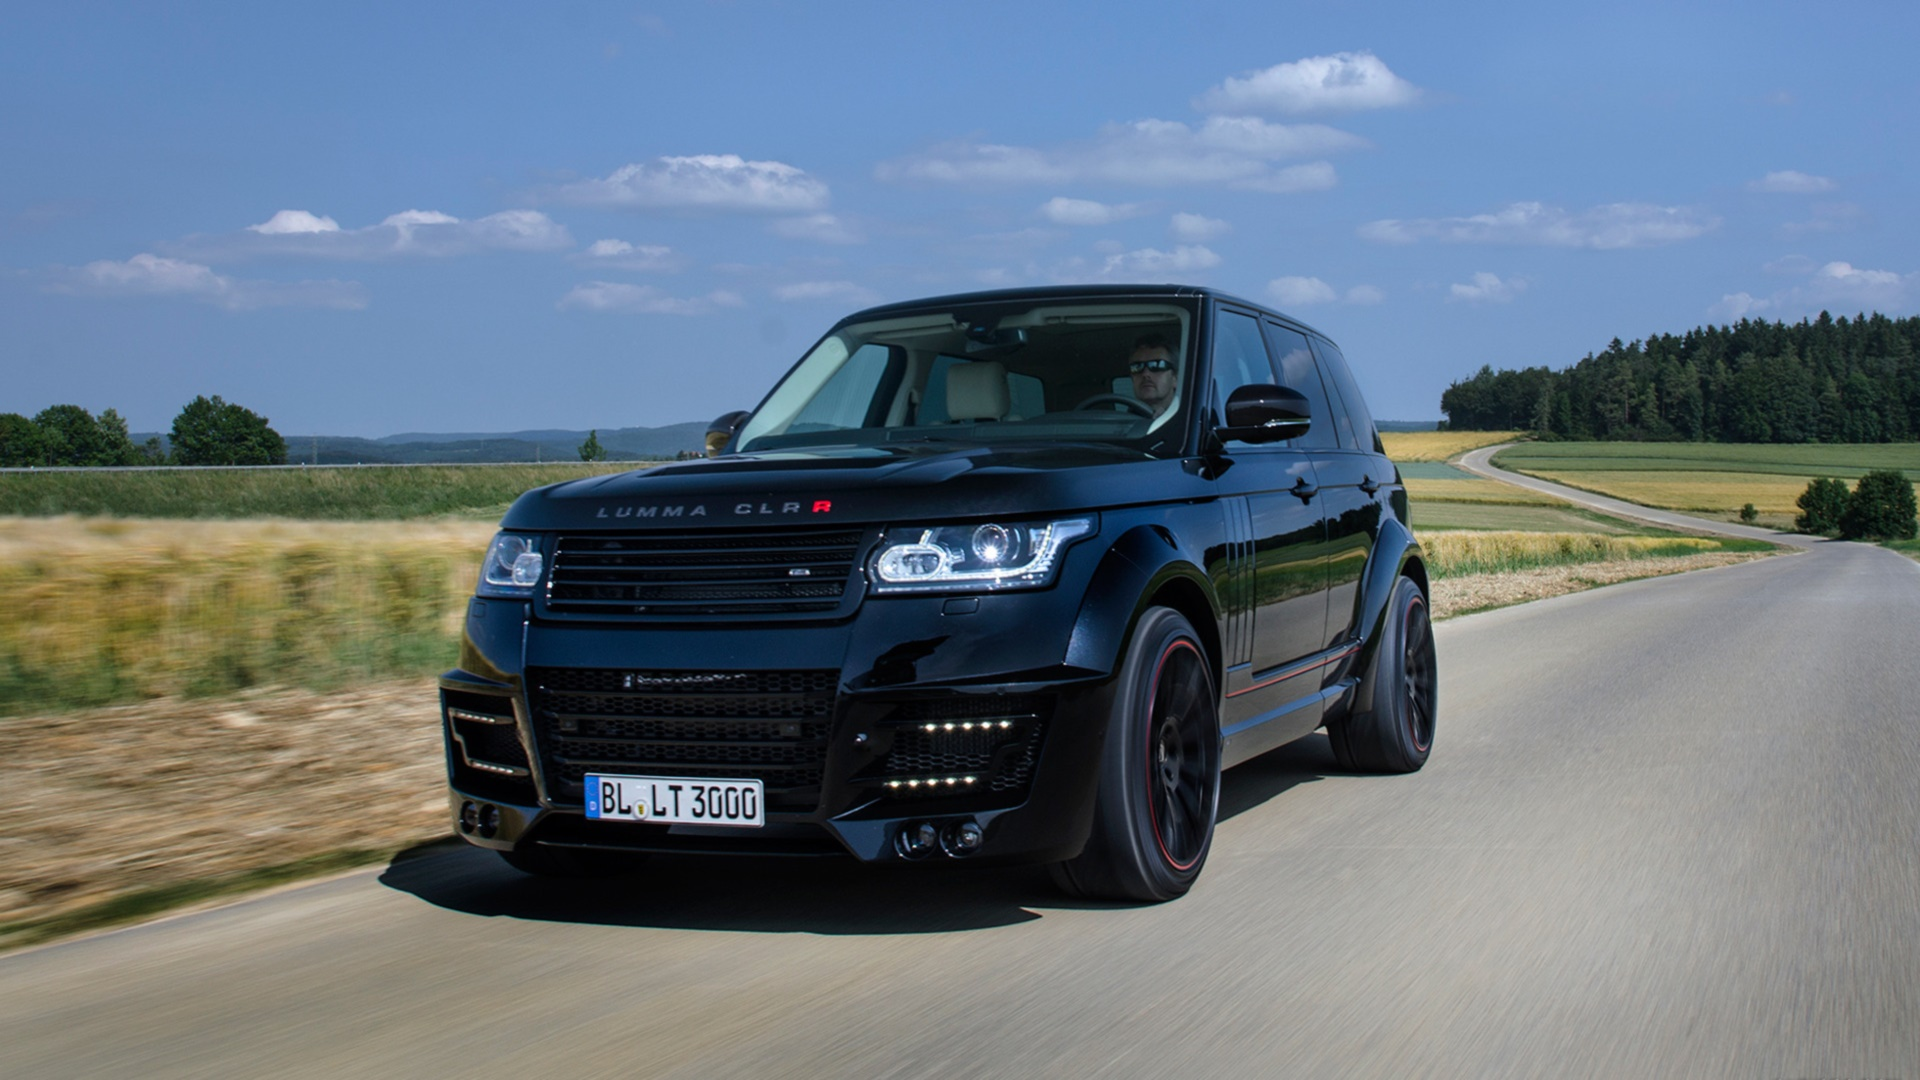 lumma range rover clr r full hd wallpaper and background. Black Bedroom Furniture Sets. Home Design Ideas